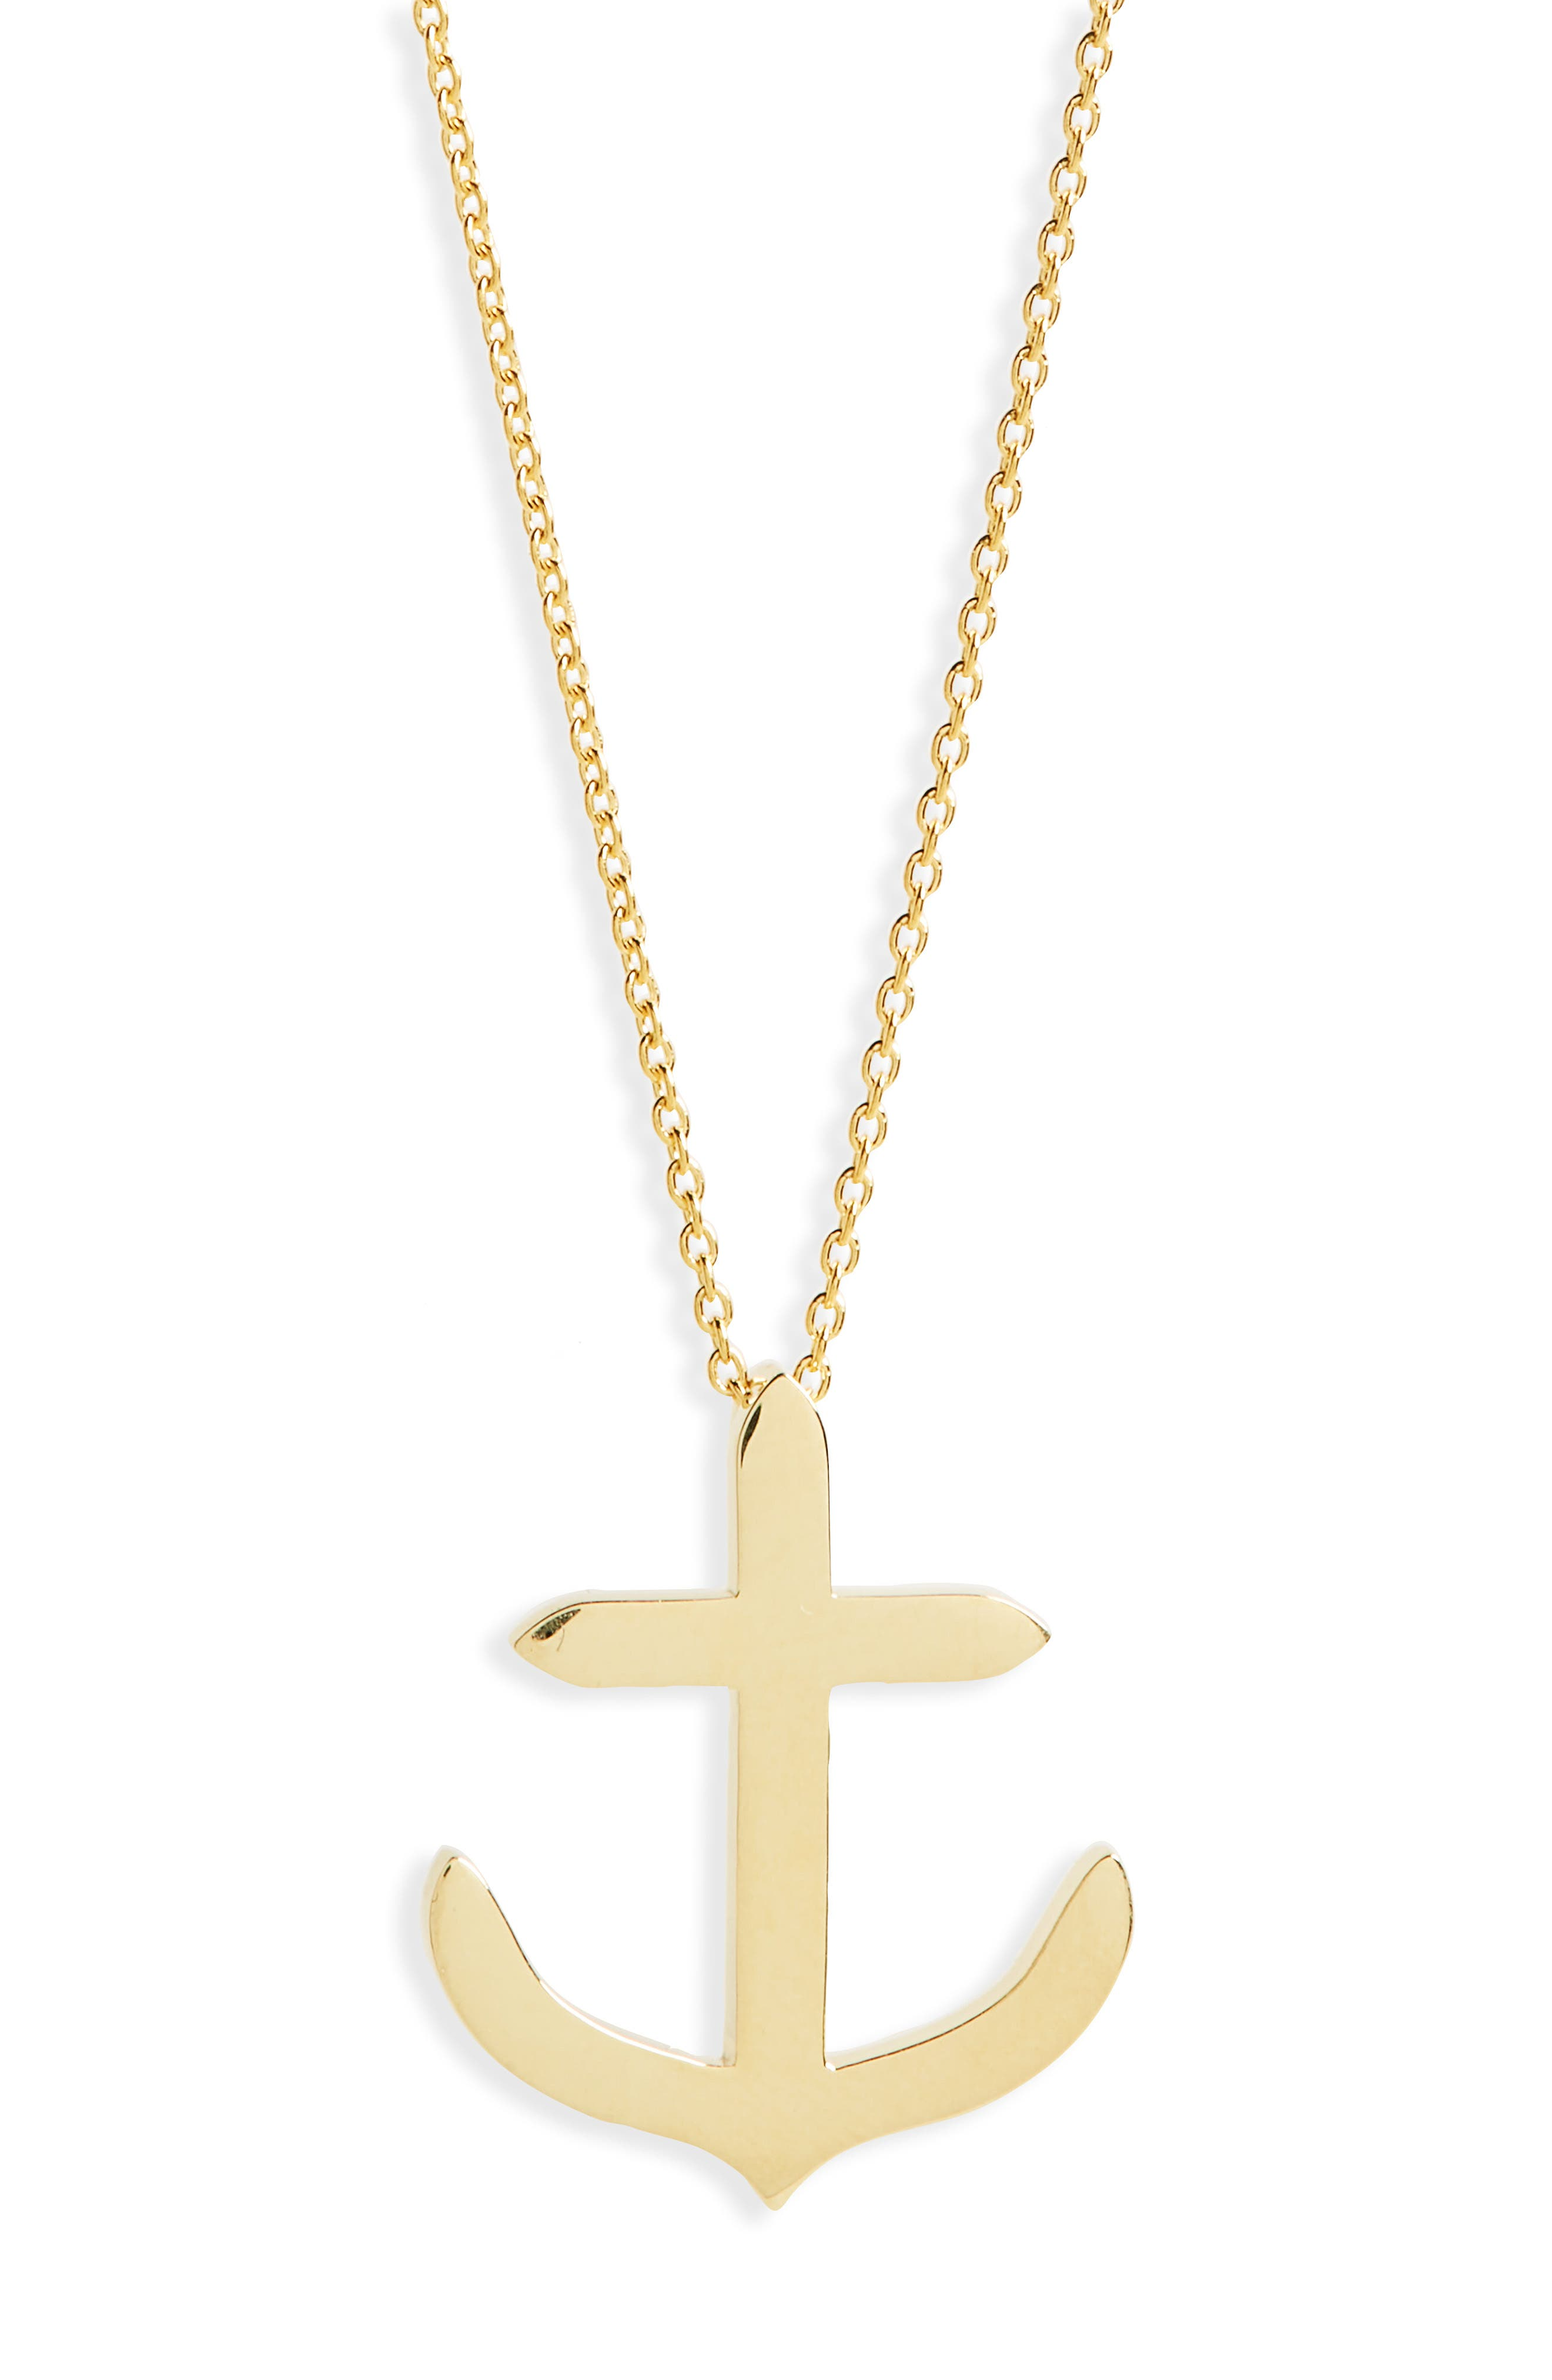 Anchor Necklace,                             Main thumbnail 1, color,                             YELLOW GOLD